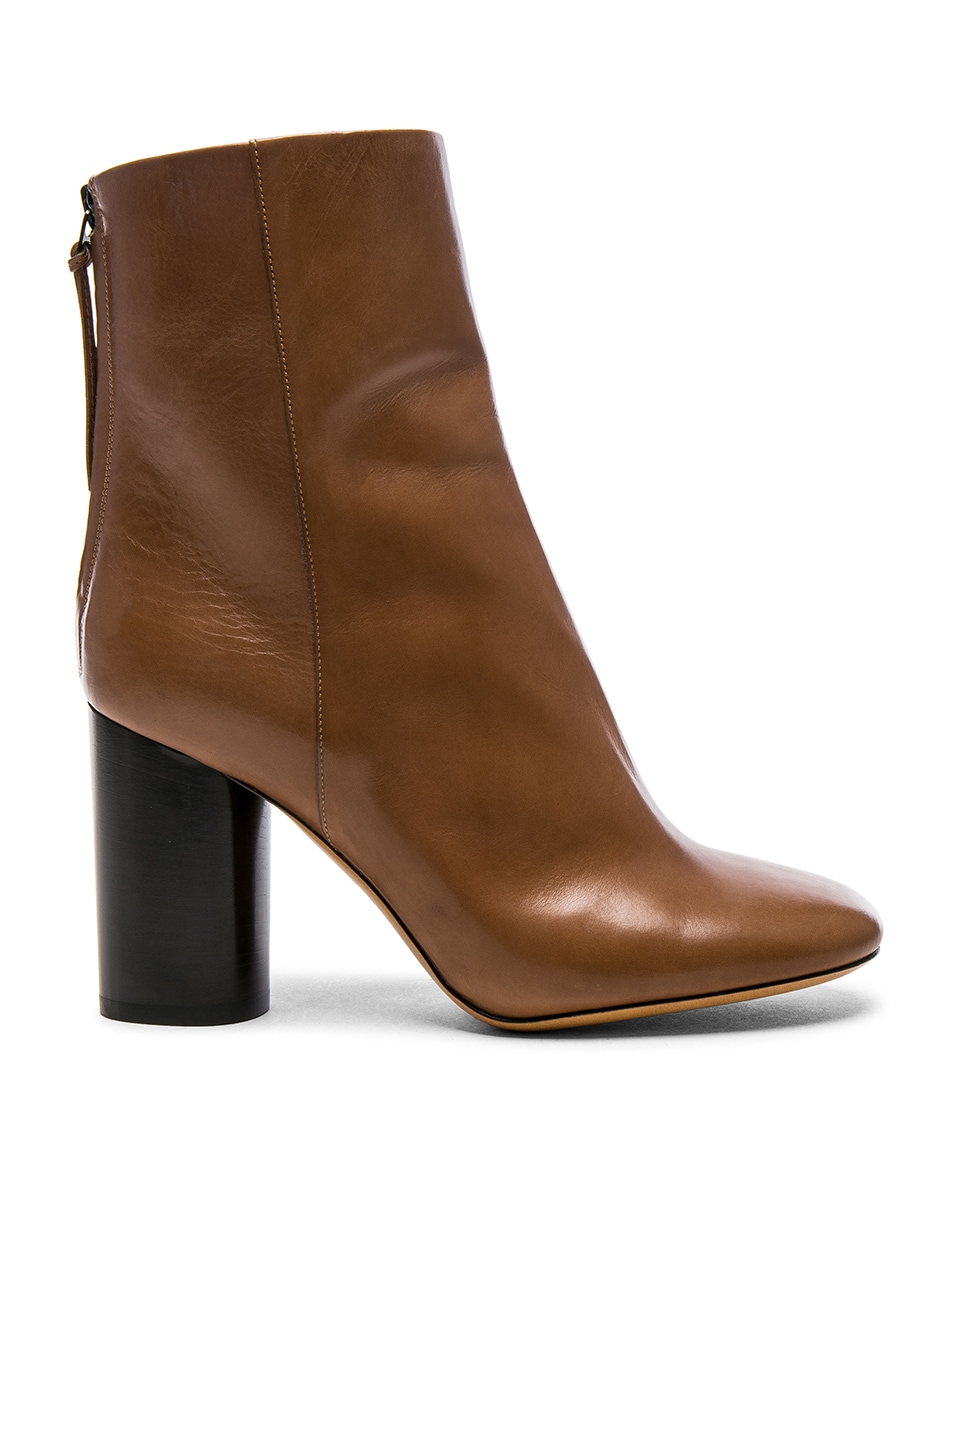 Image 1 of Isabel Marant Leather Garett Boots in Beige